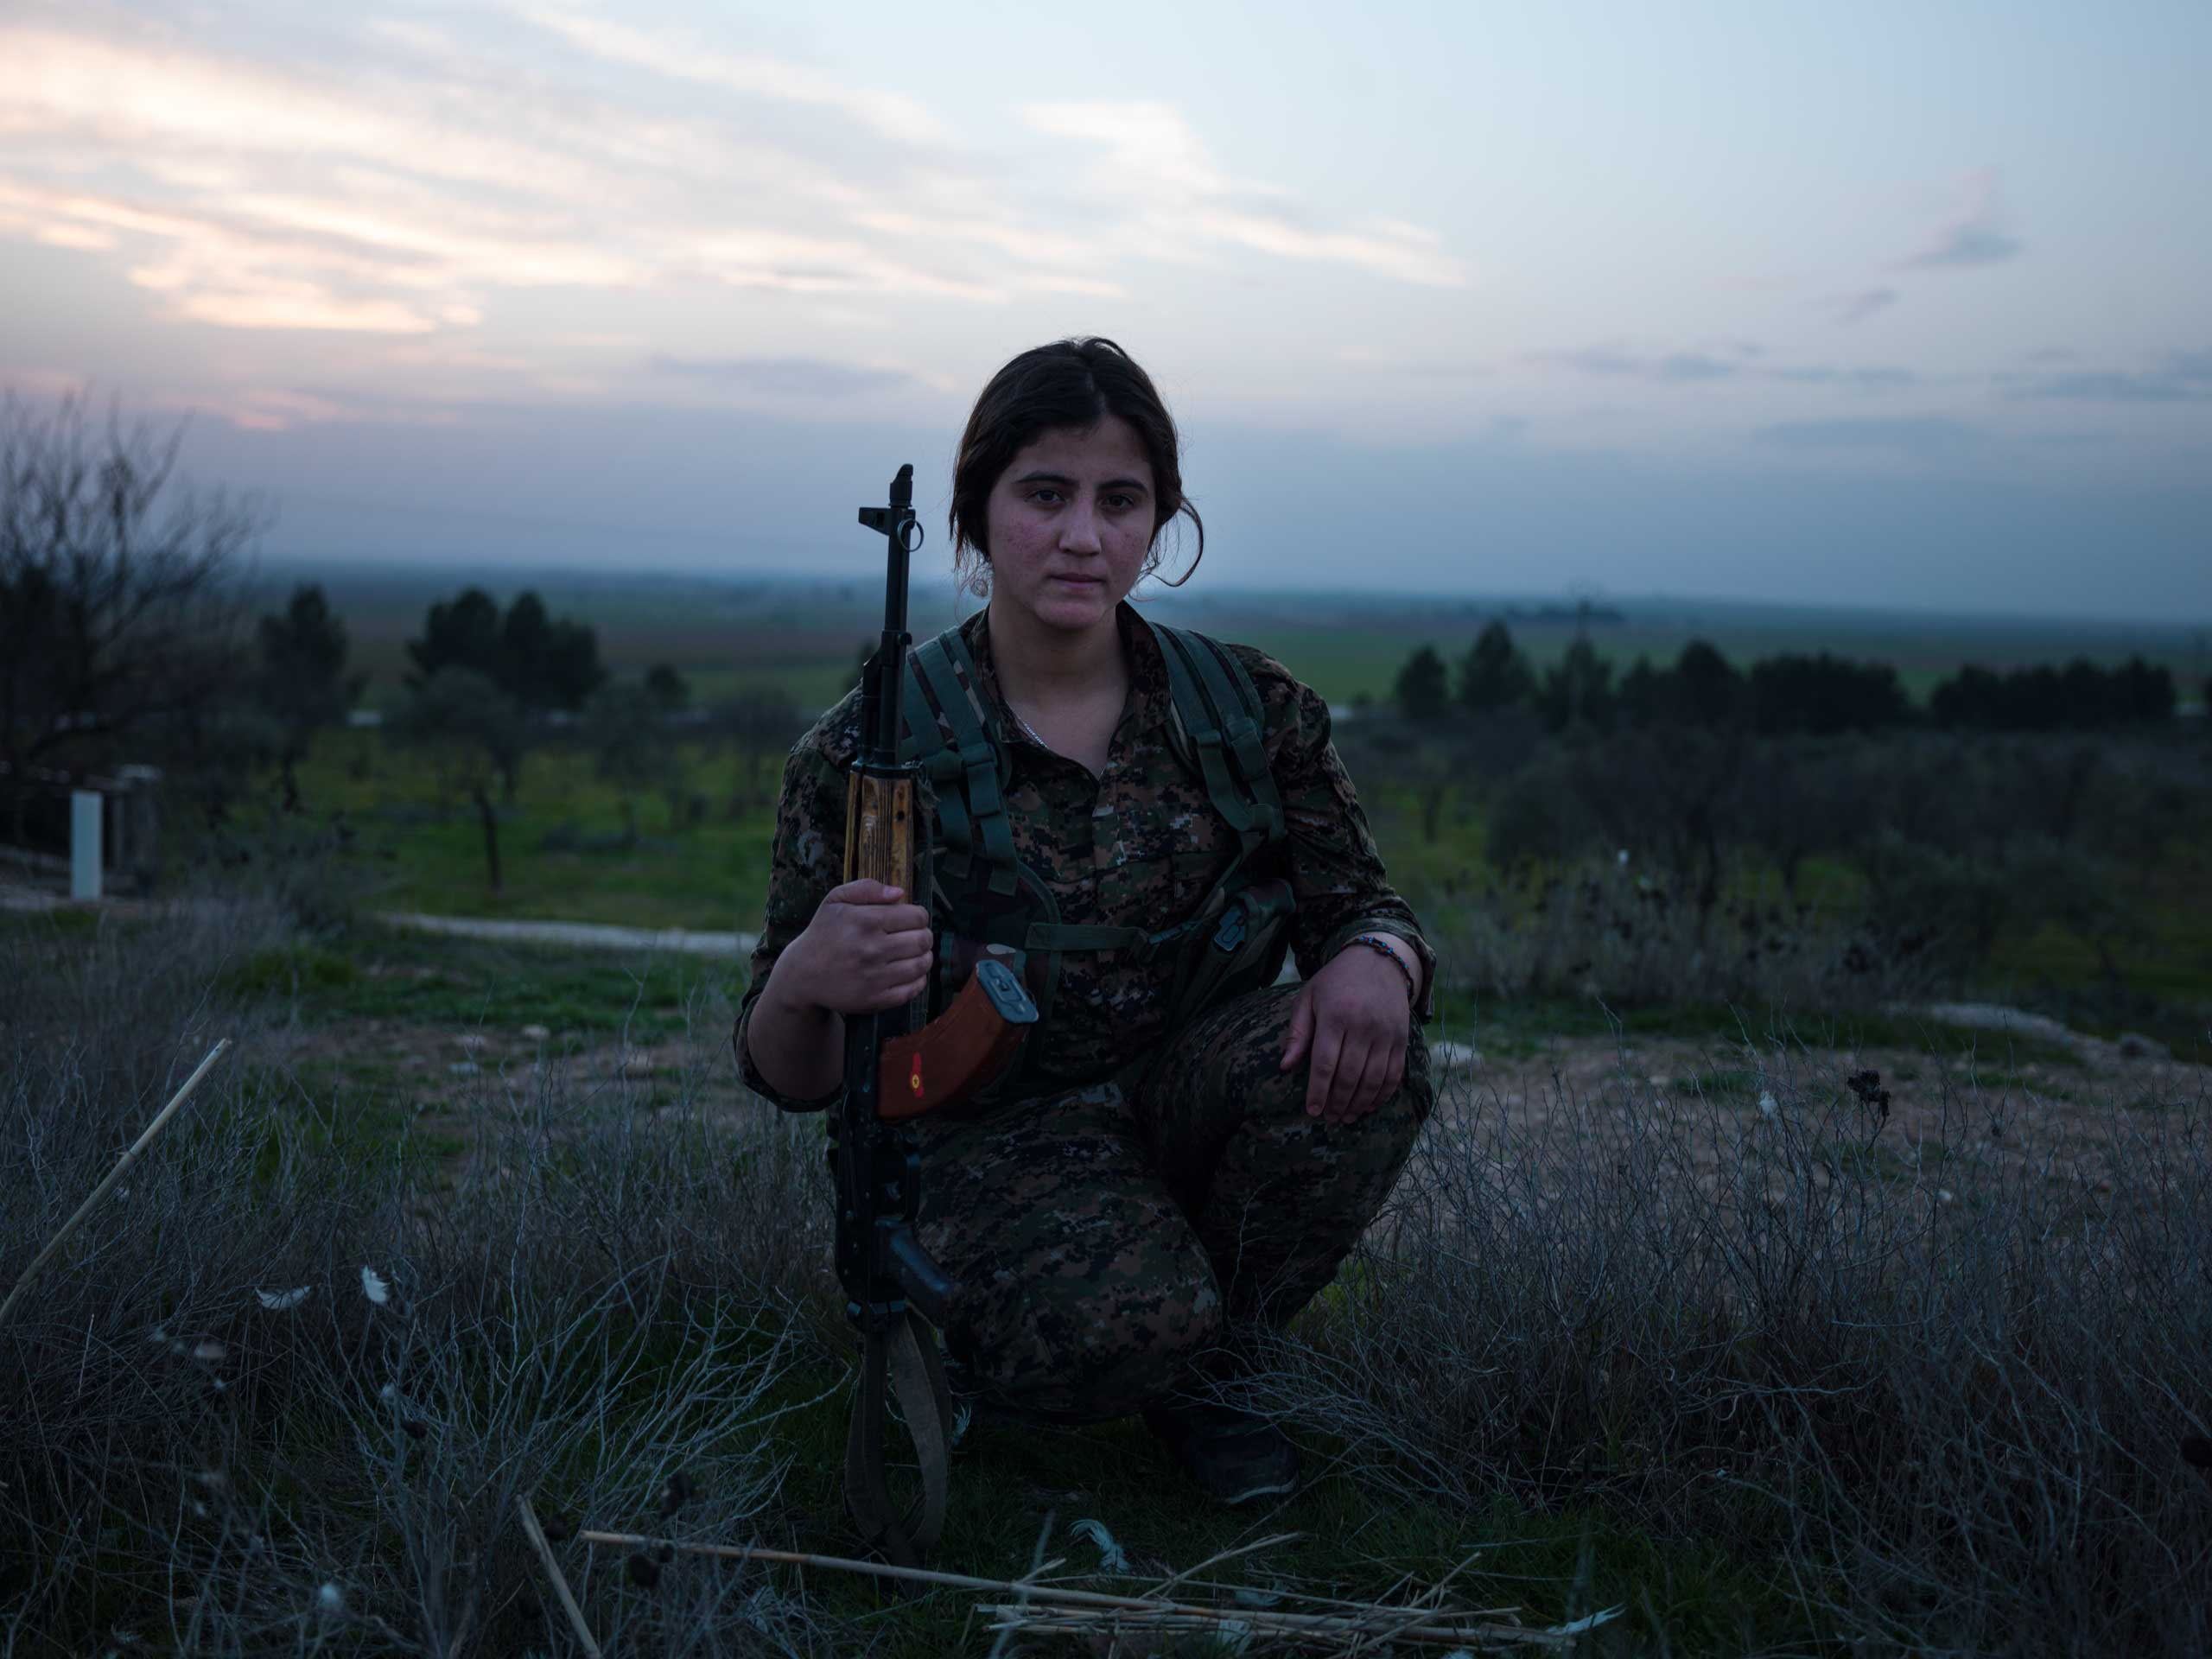 20-year old YPJ fighter Aijan Denis from Amuda, Syria:                                 Where I am now, men and women are equal and we all have the same thought, which is fighting for our ideology and the rights of women. My three sisters and I are all in YPJ.